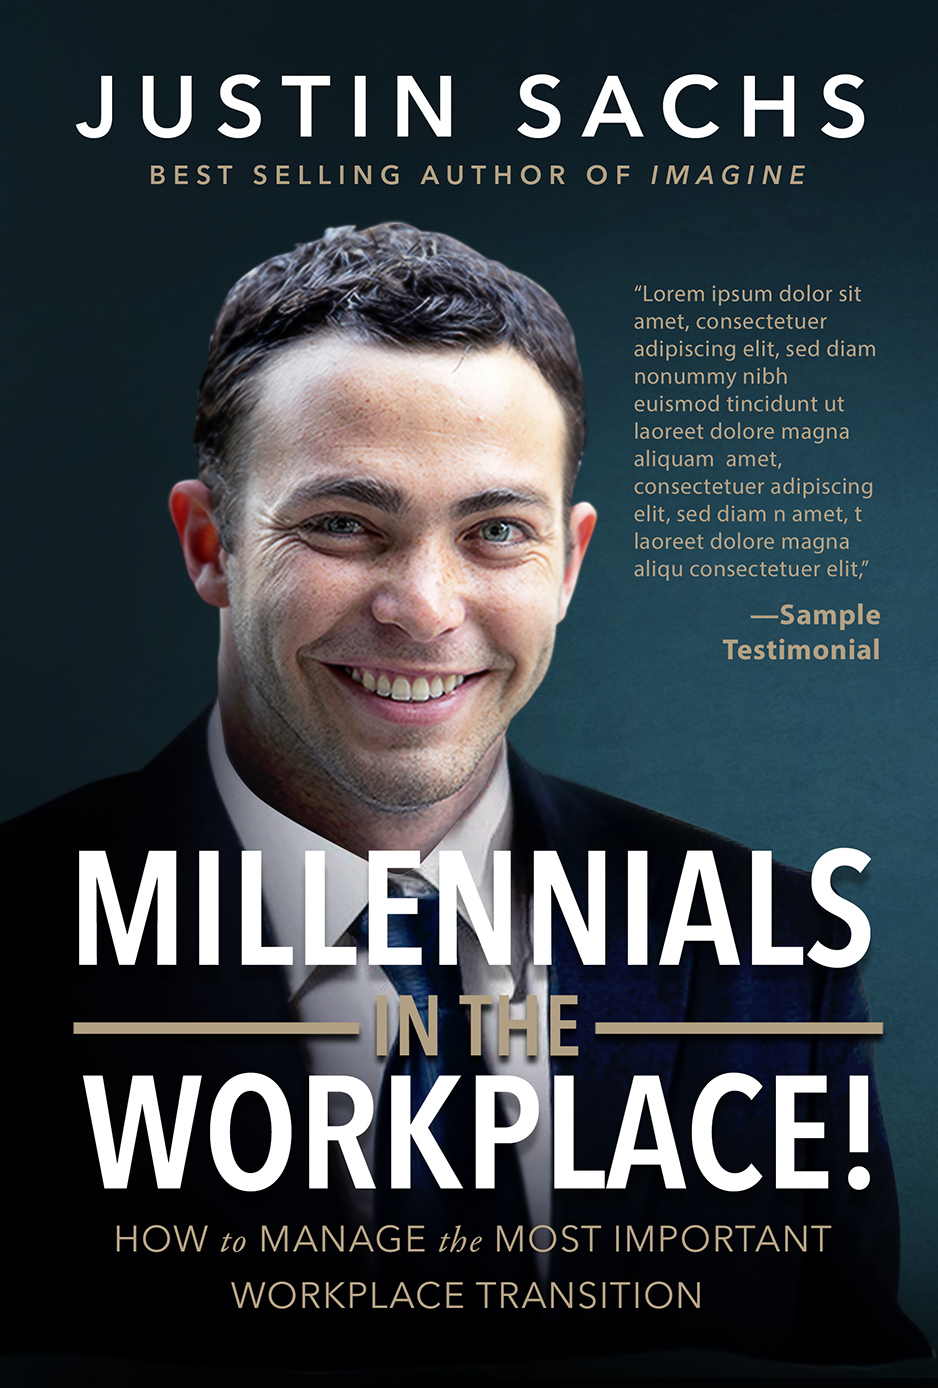 Millennials In the Workplace!